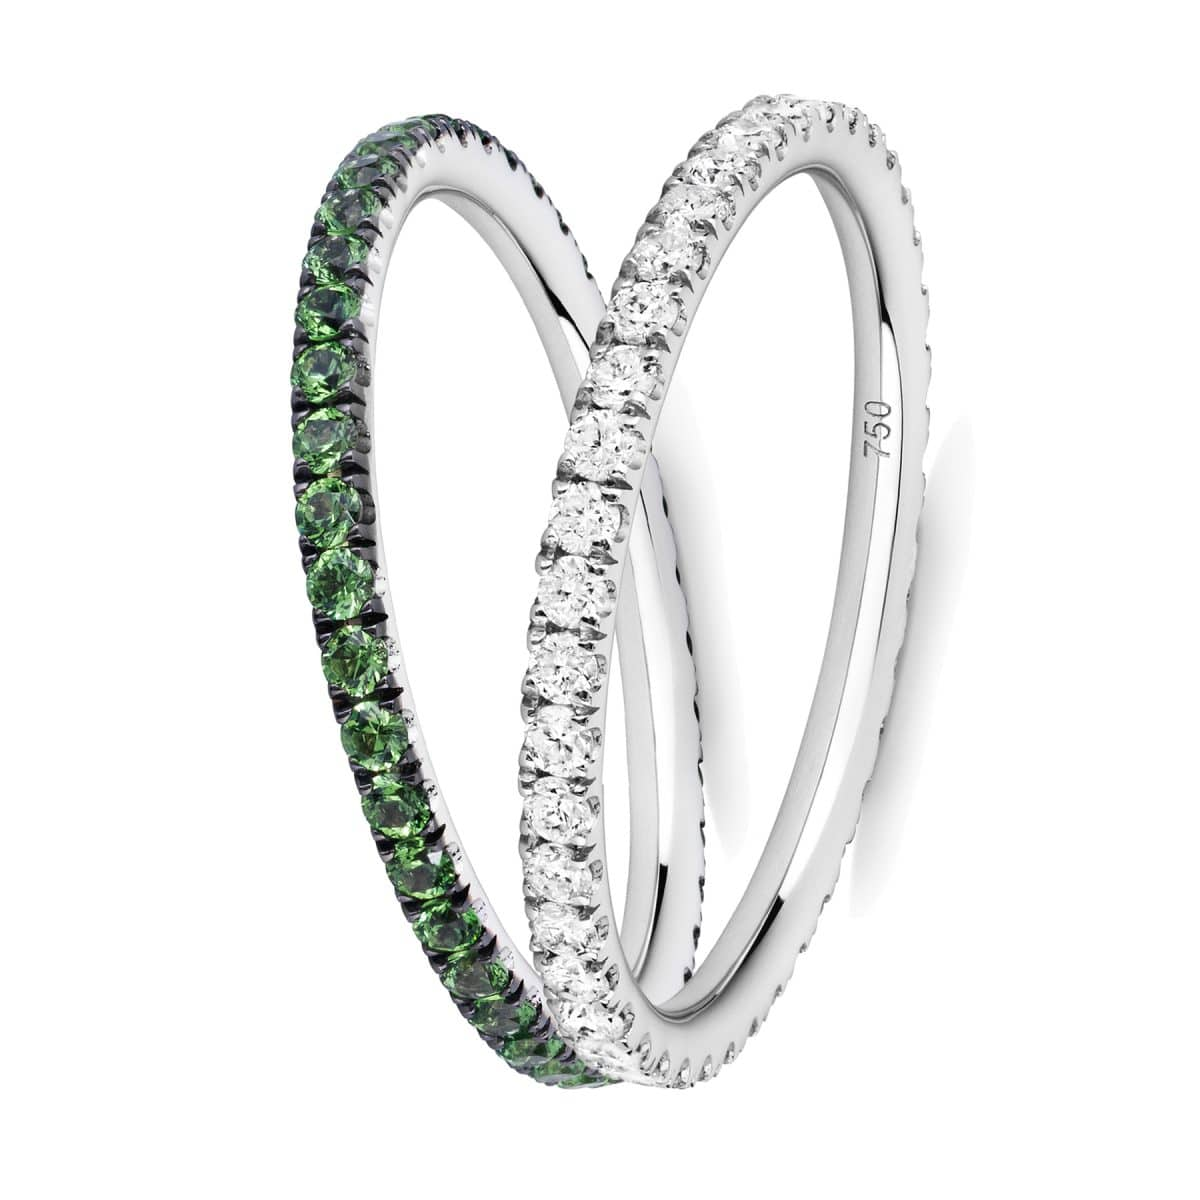 green garnet and diamond ring pair